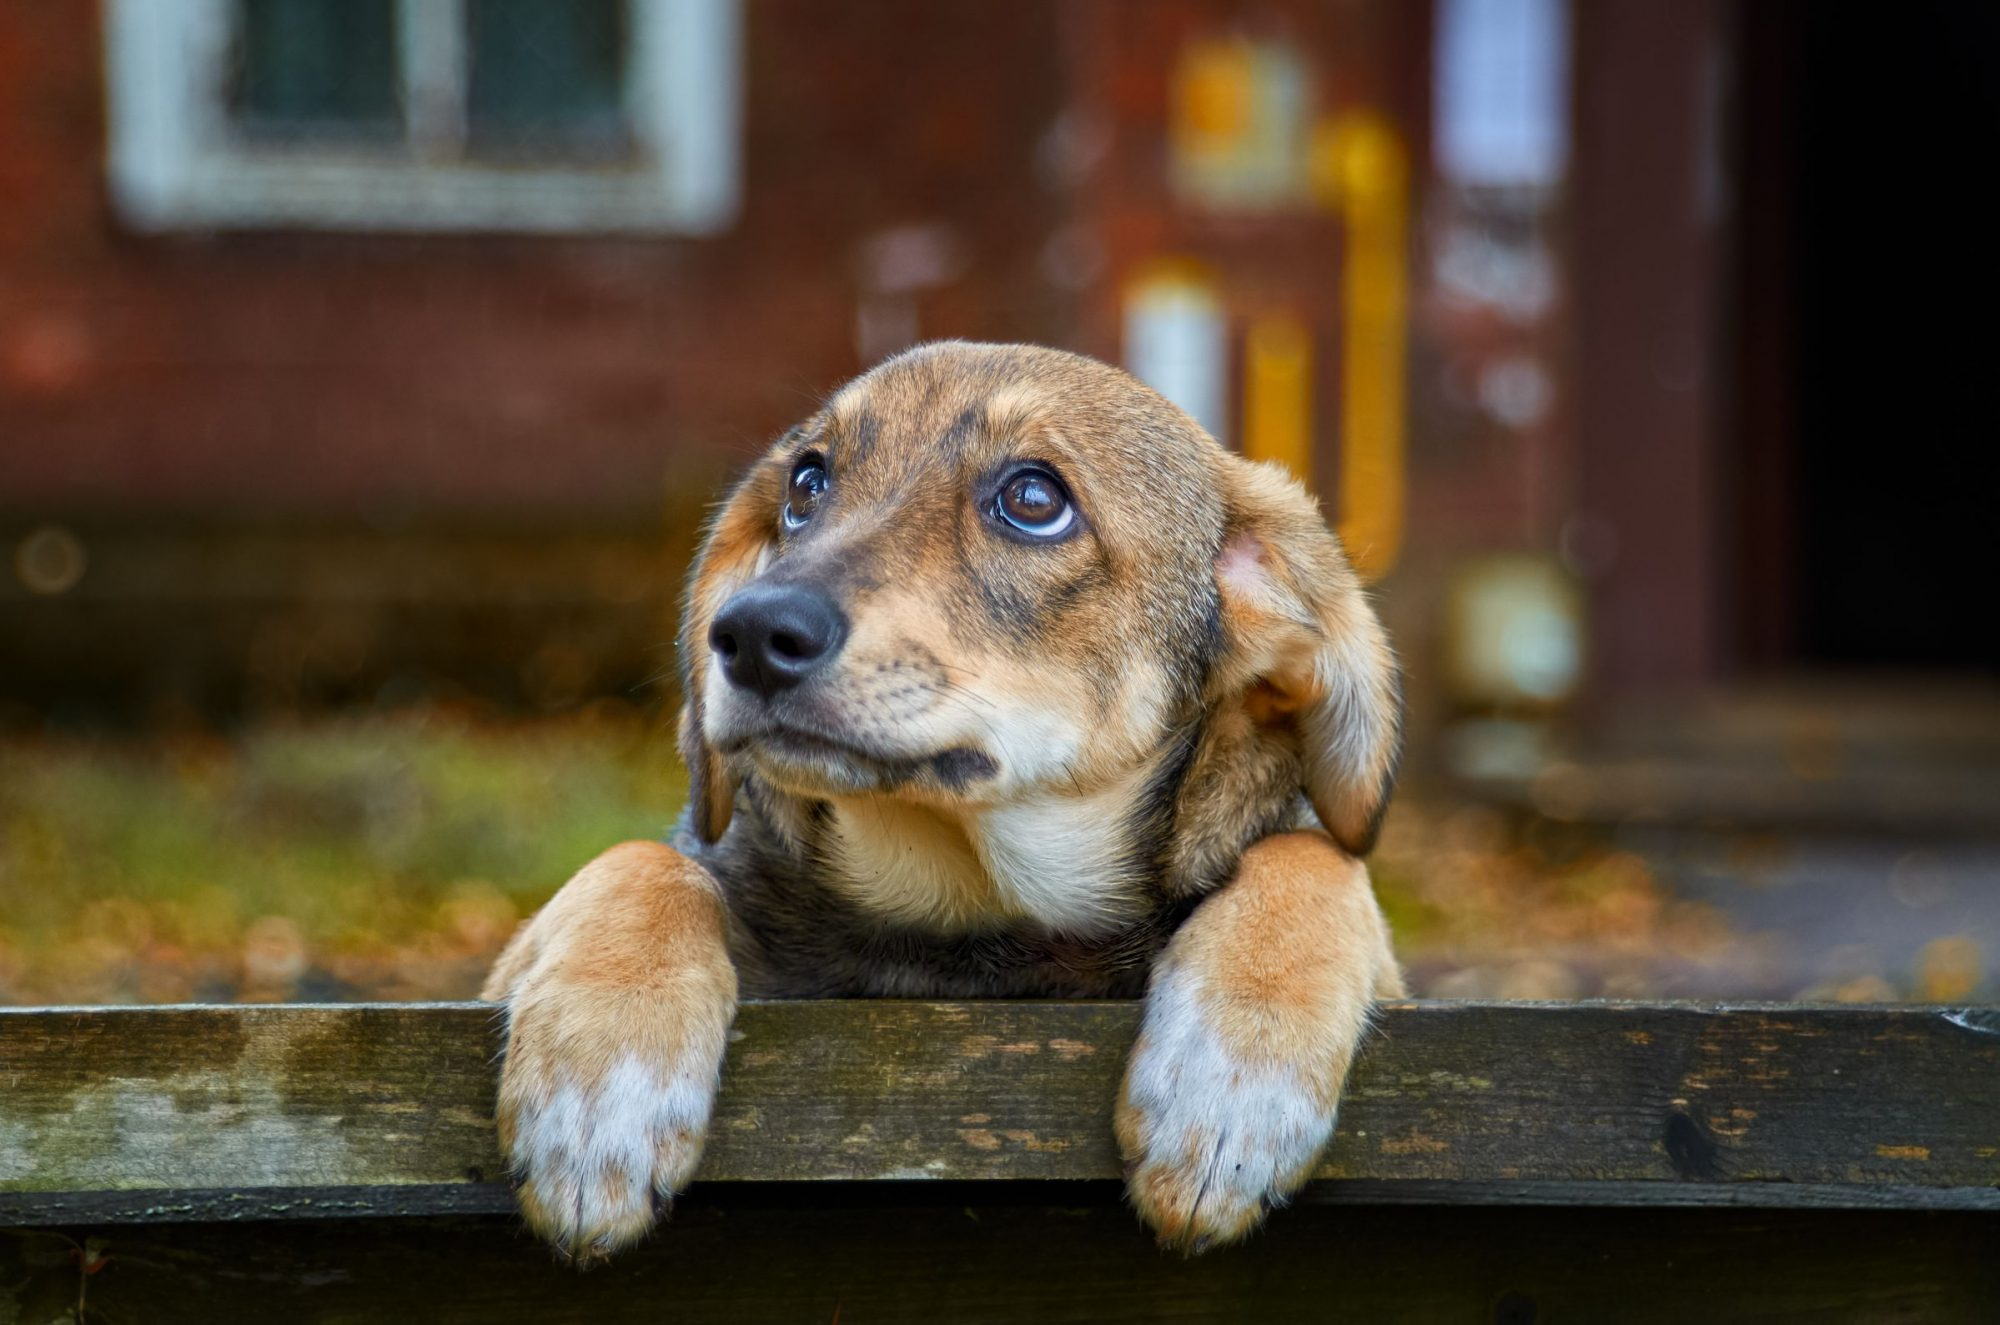 A dog stands against a wood fence.